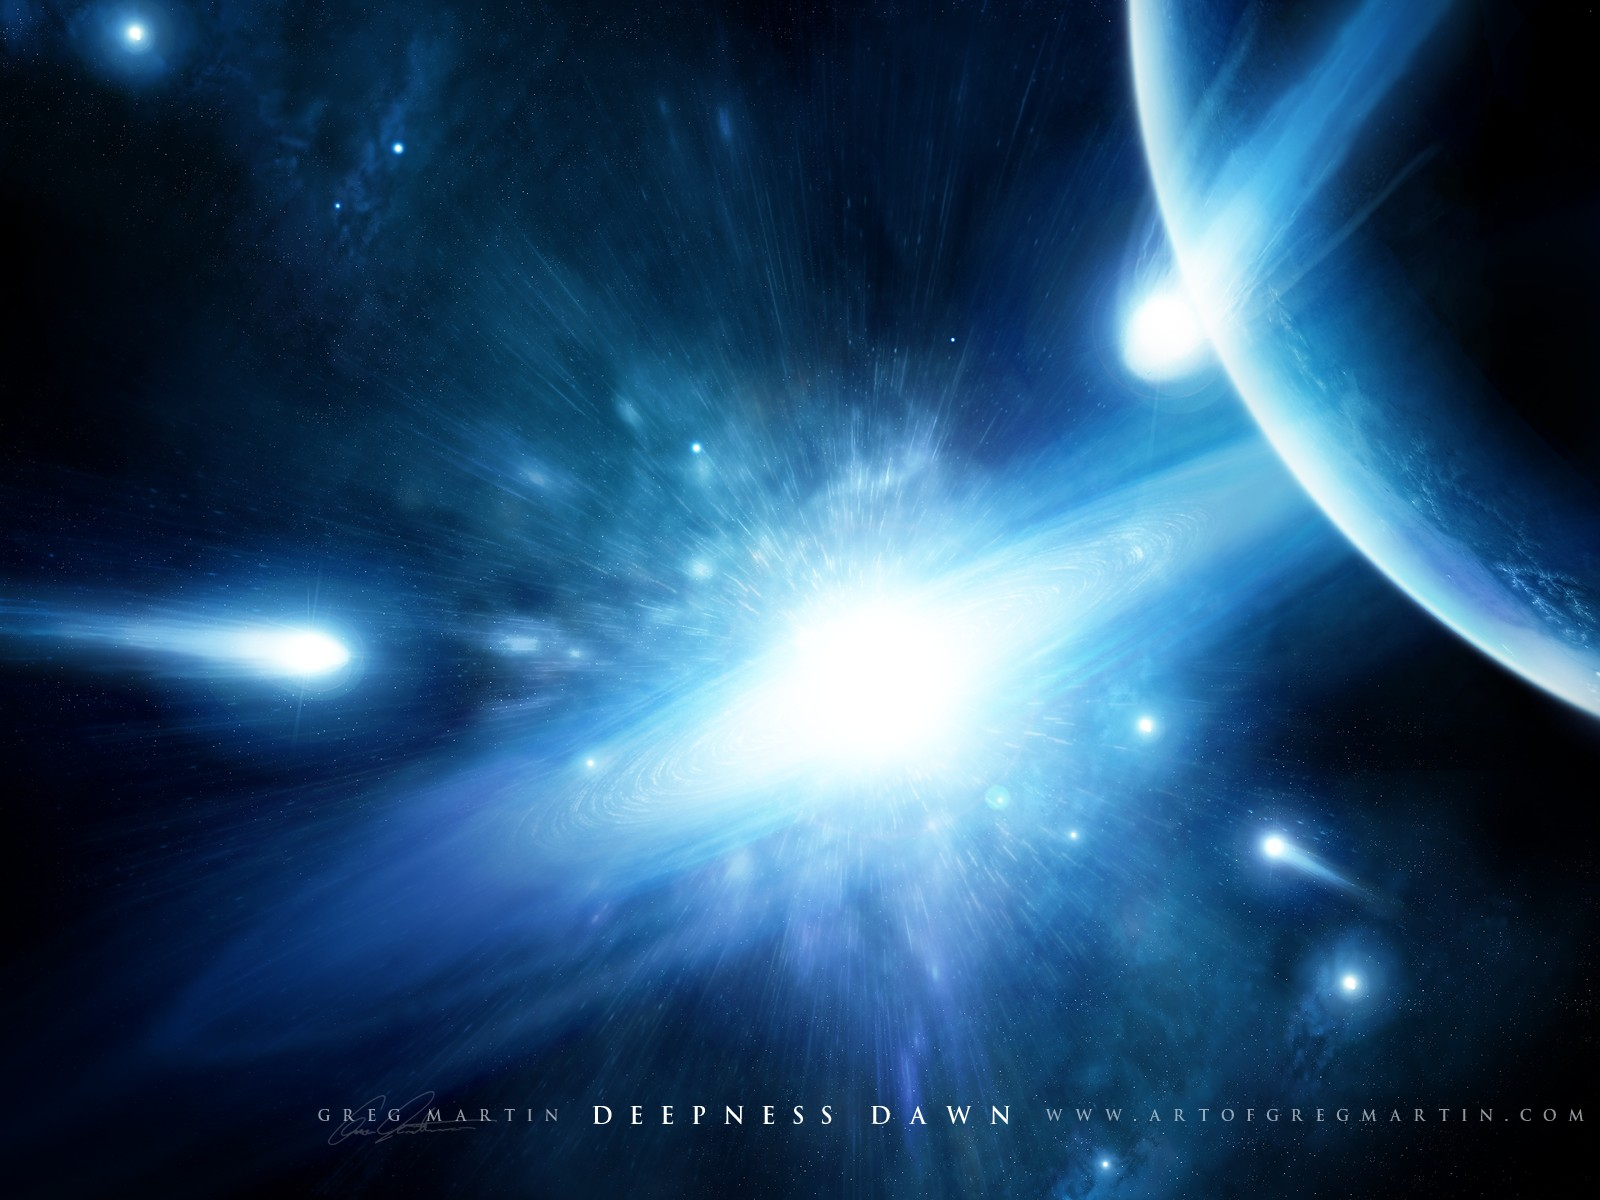 Fond Decran Deepness Dawn Wallpaper